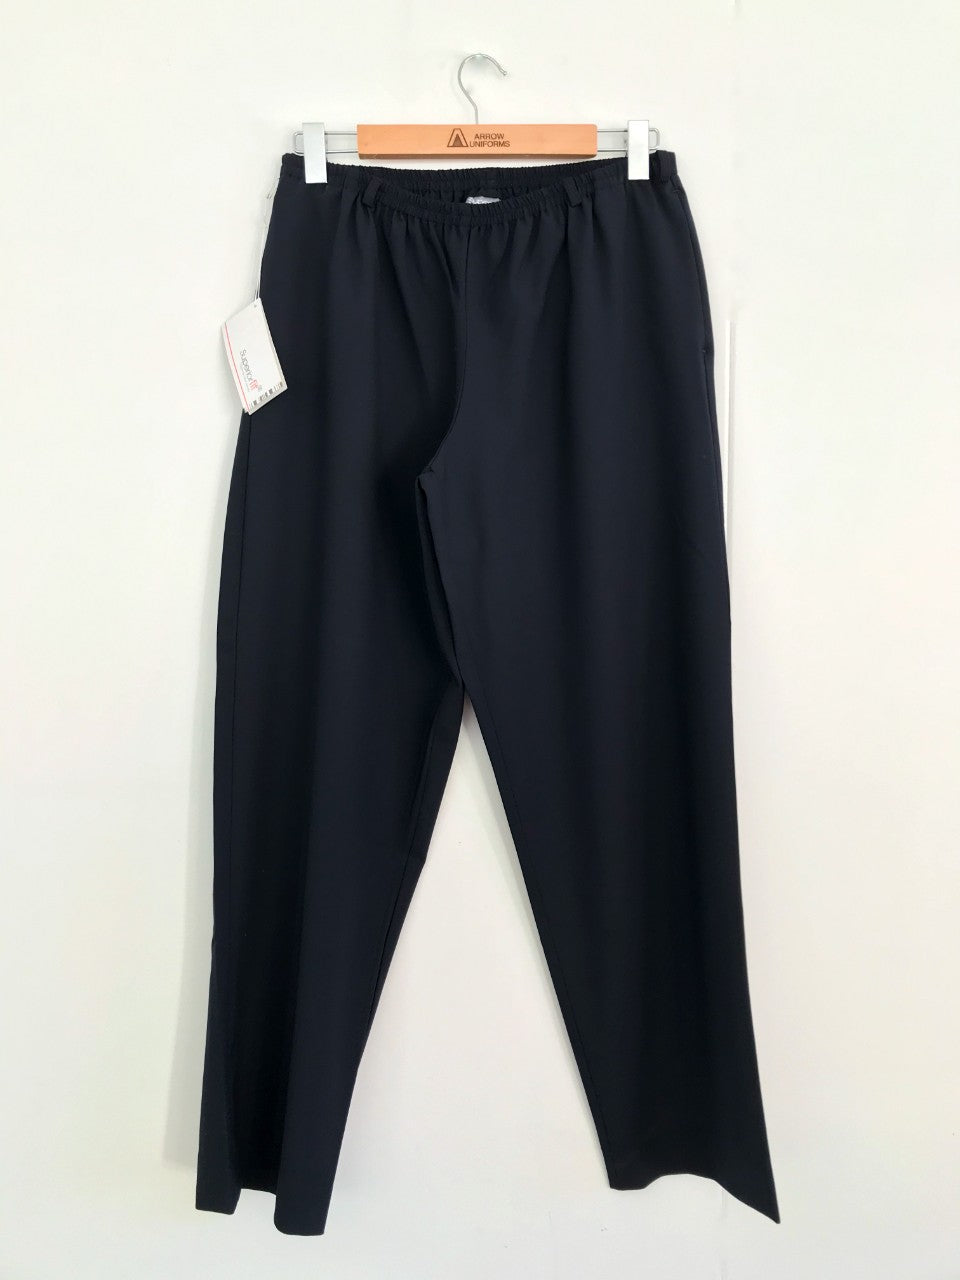 Full Elastic Waist Pullon Pants Side Pkt - Navy